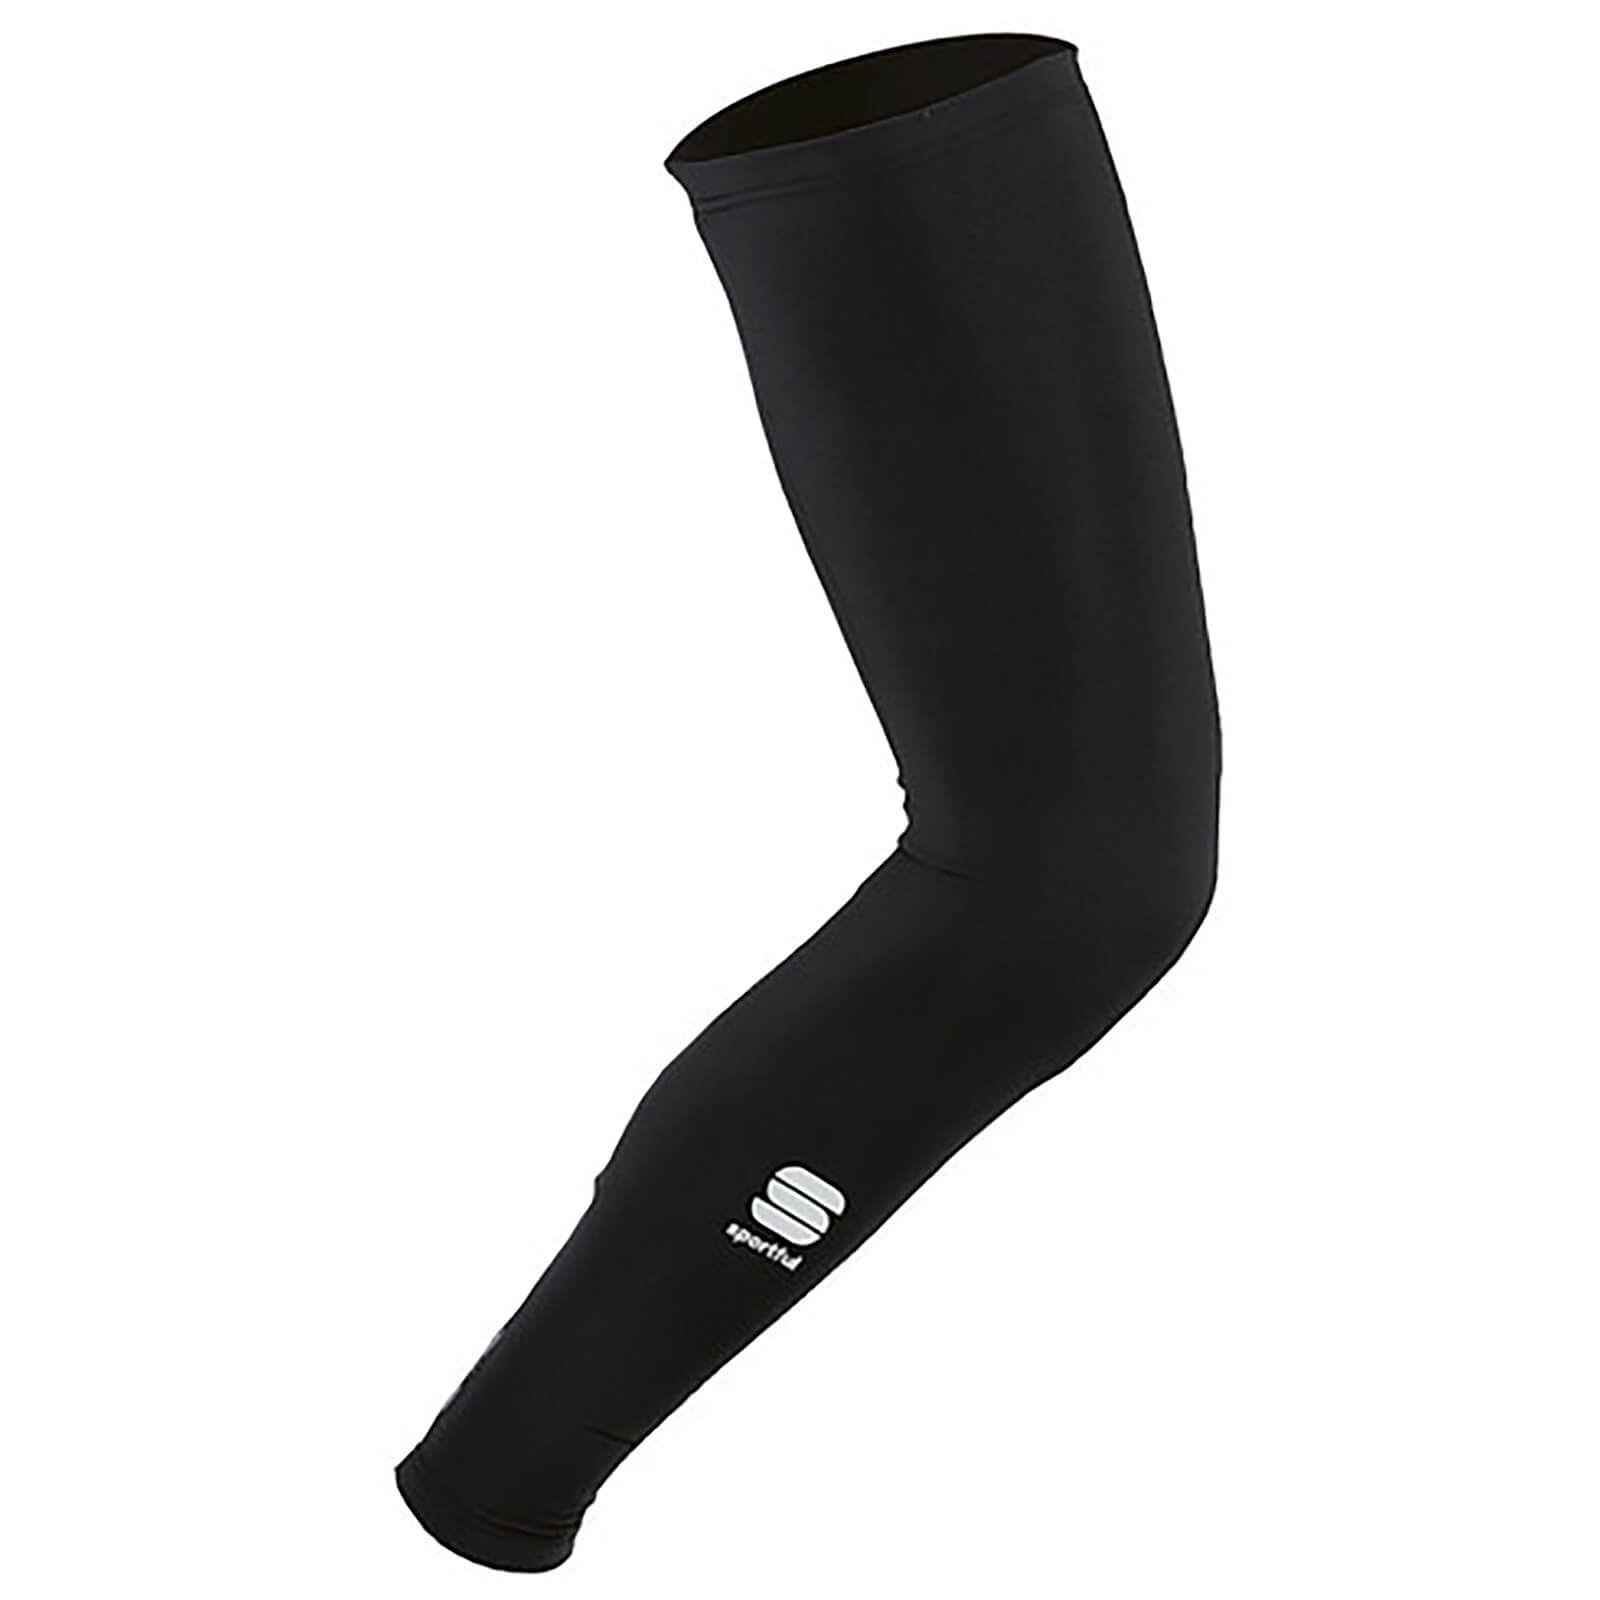 Sportful Thermodrytex+ Leg Warmers - Black - L